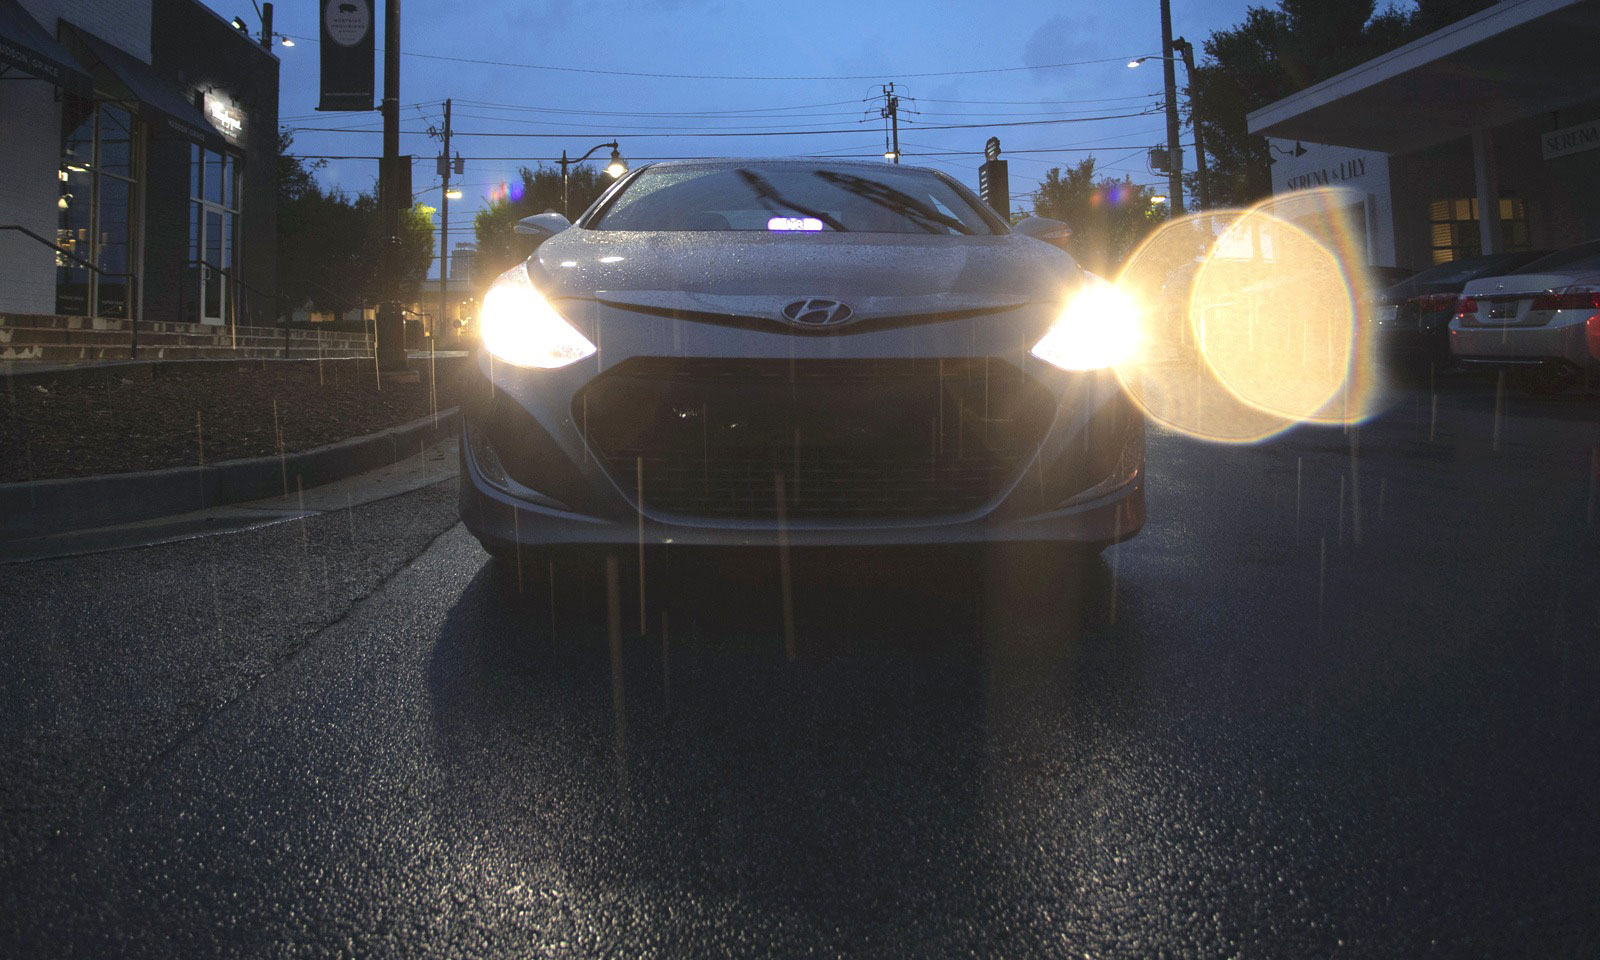 Car front with lights turned on